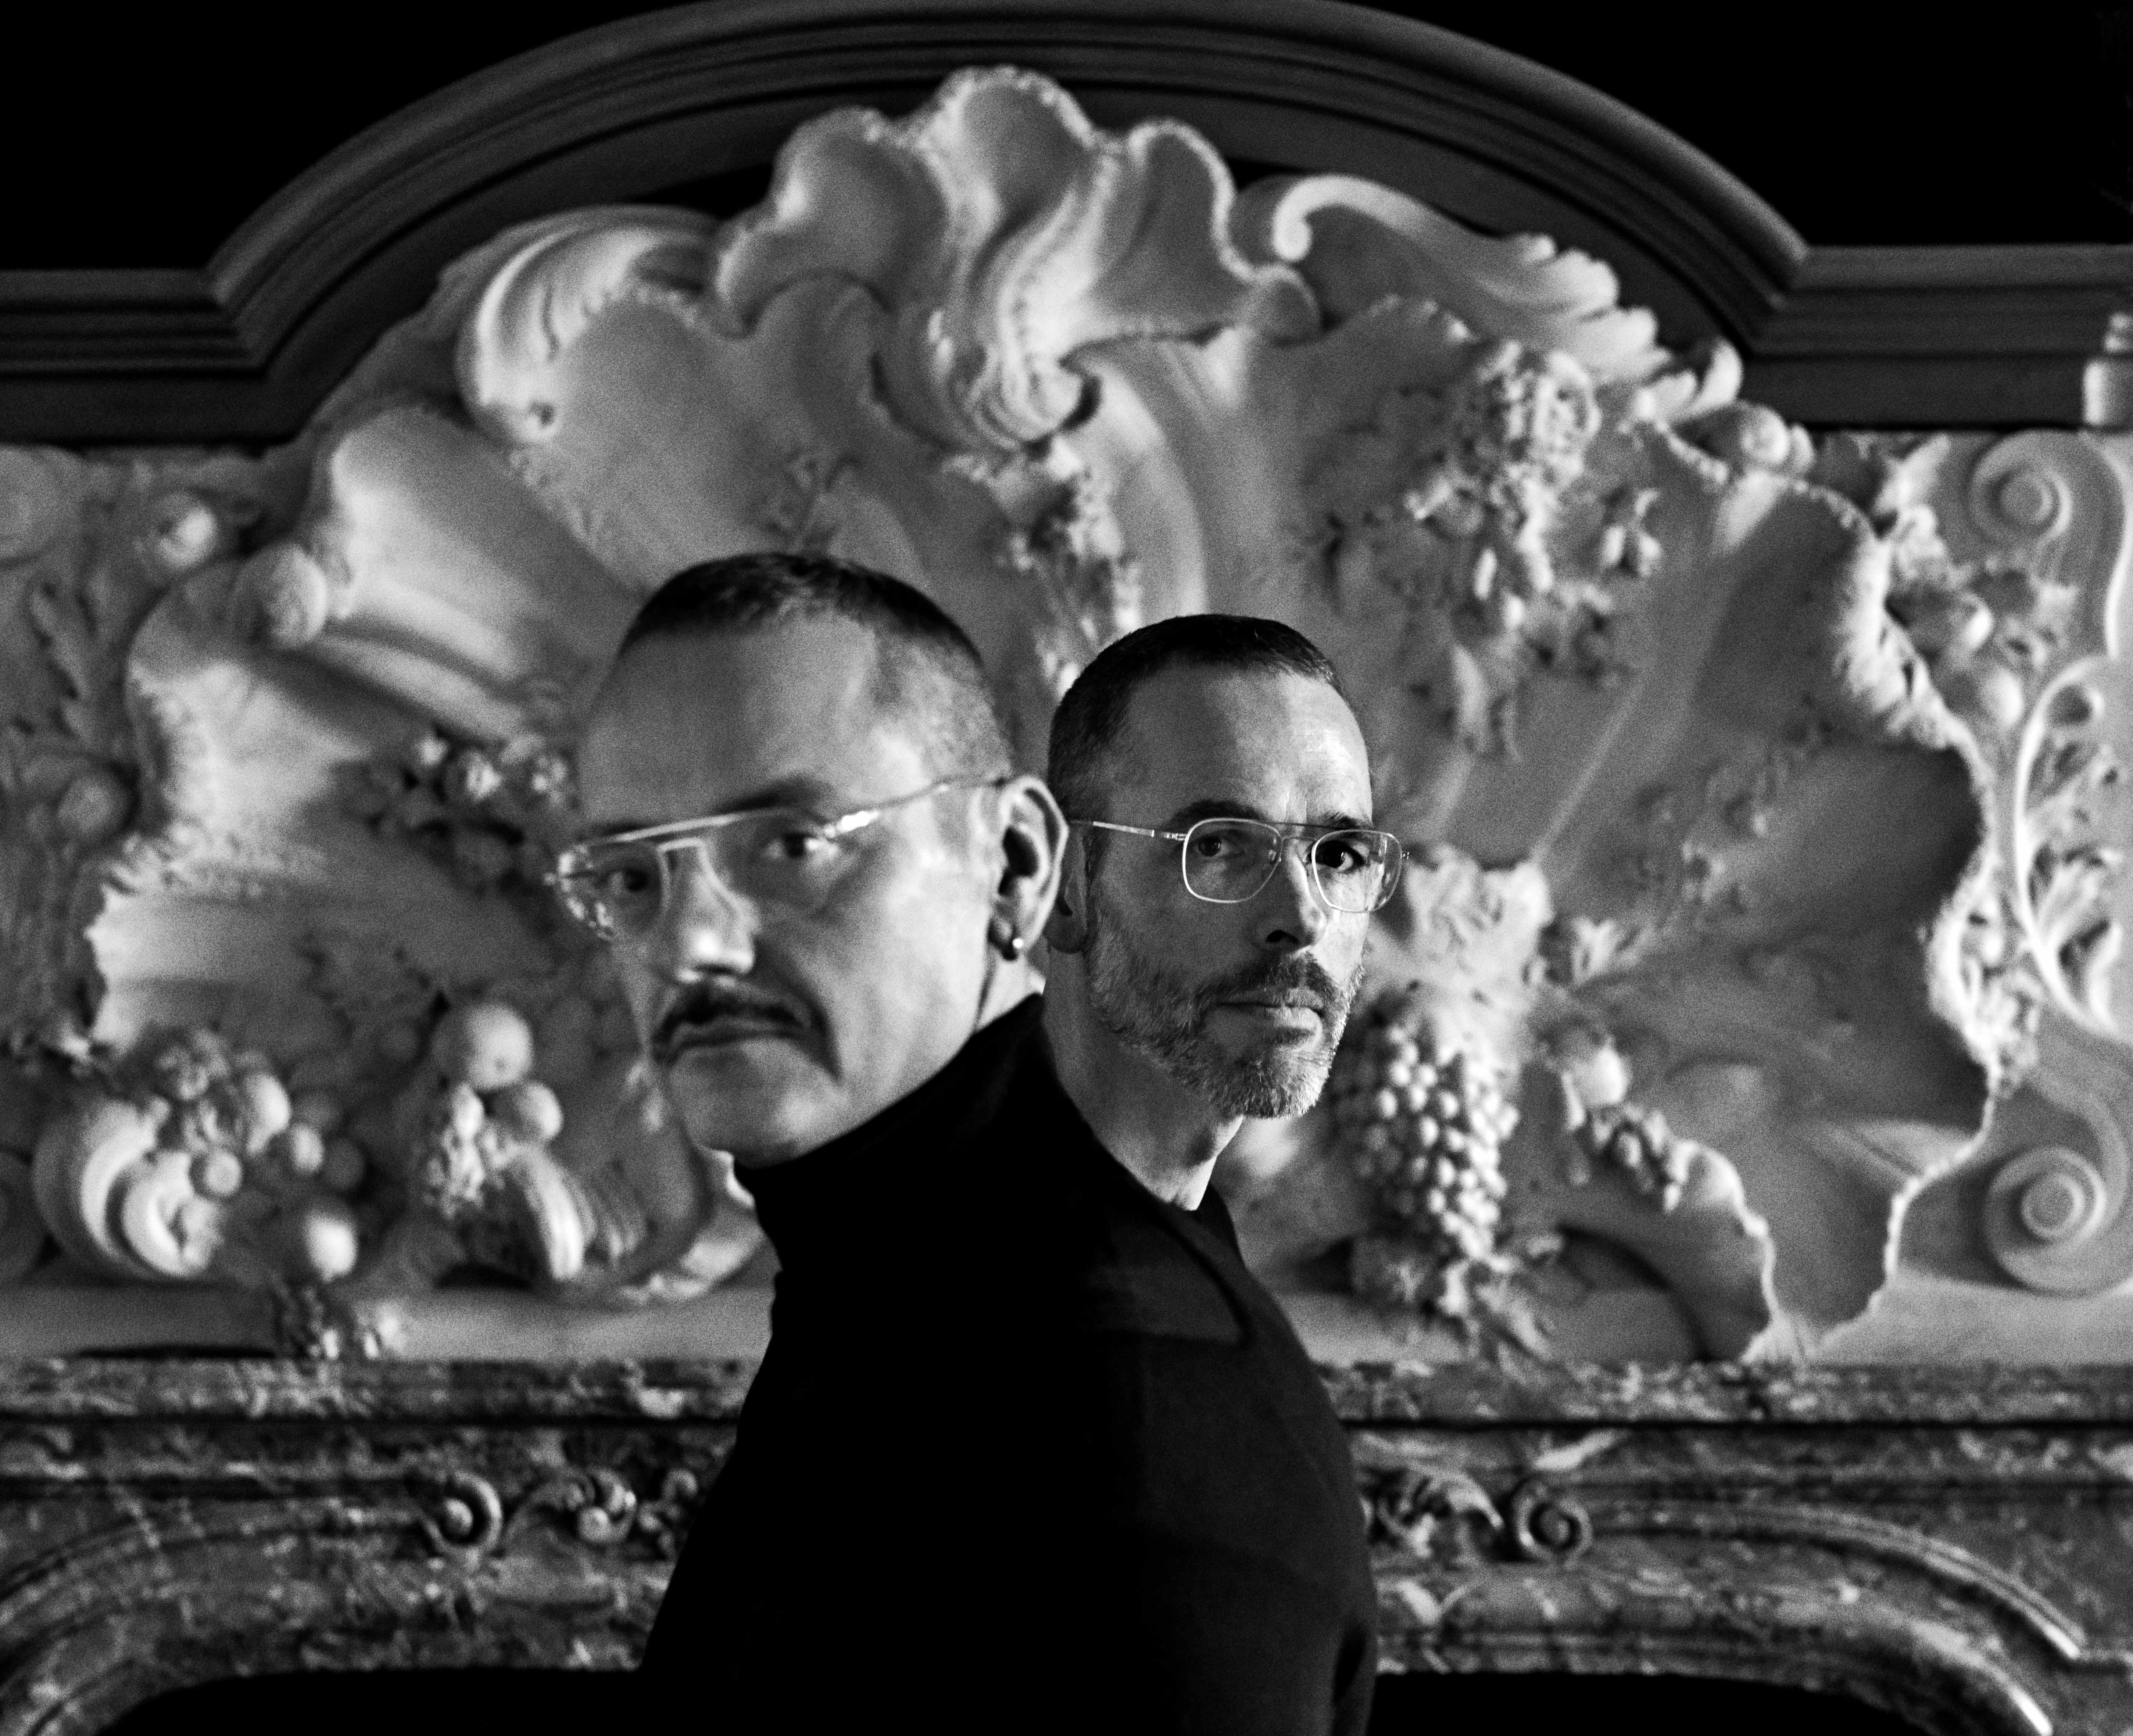 Viktor Horsting et Rolf Snoeren - Photo © Anton Corbijn